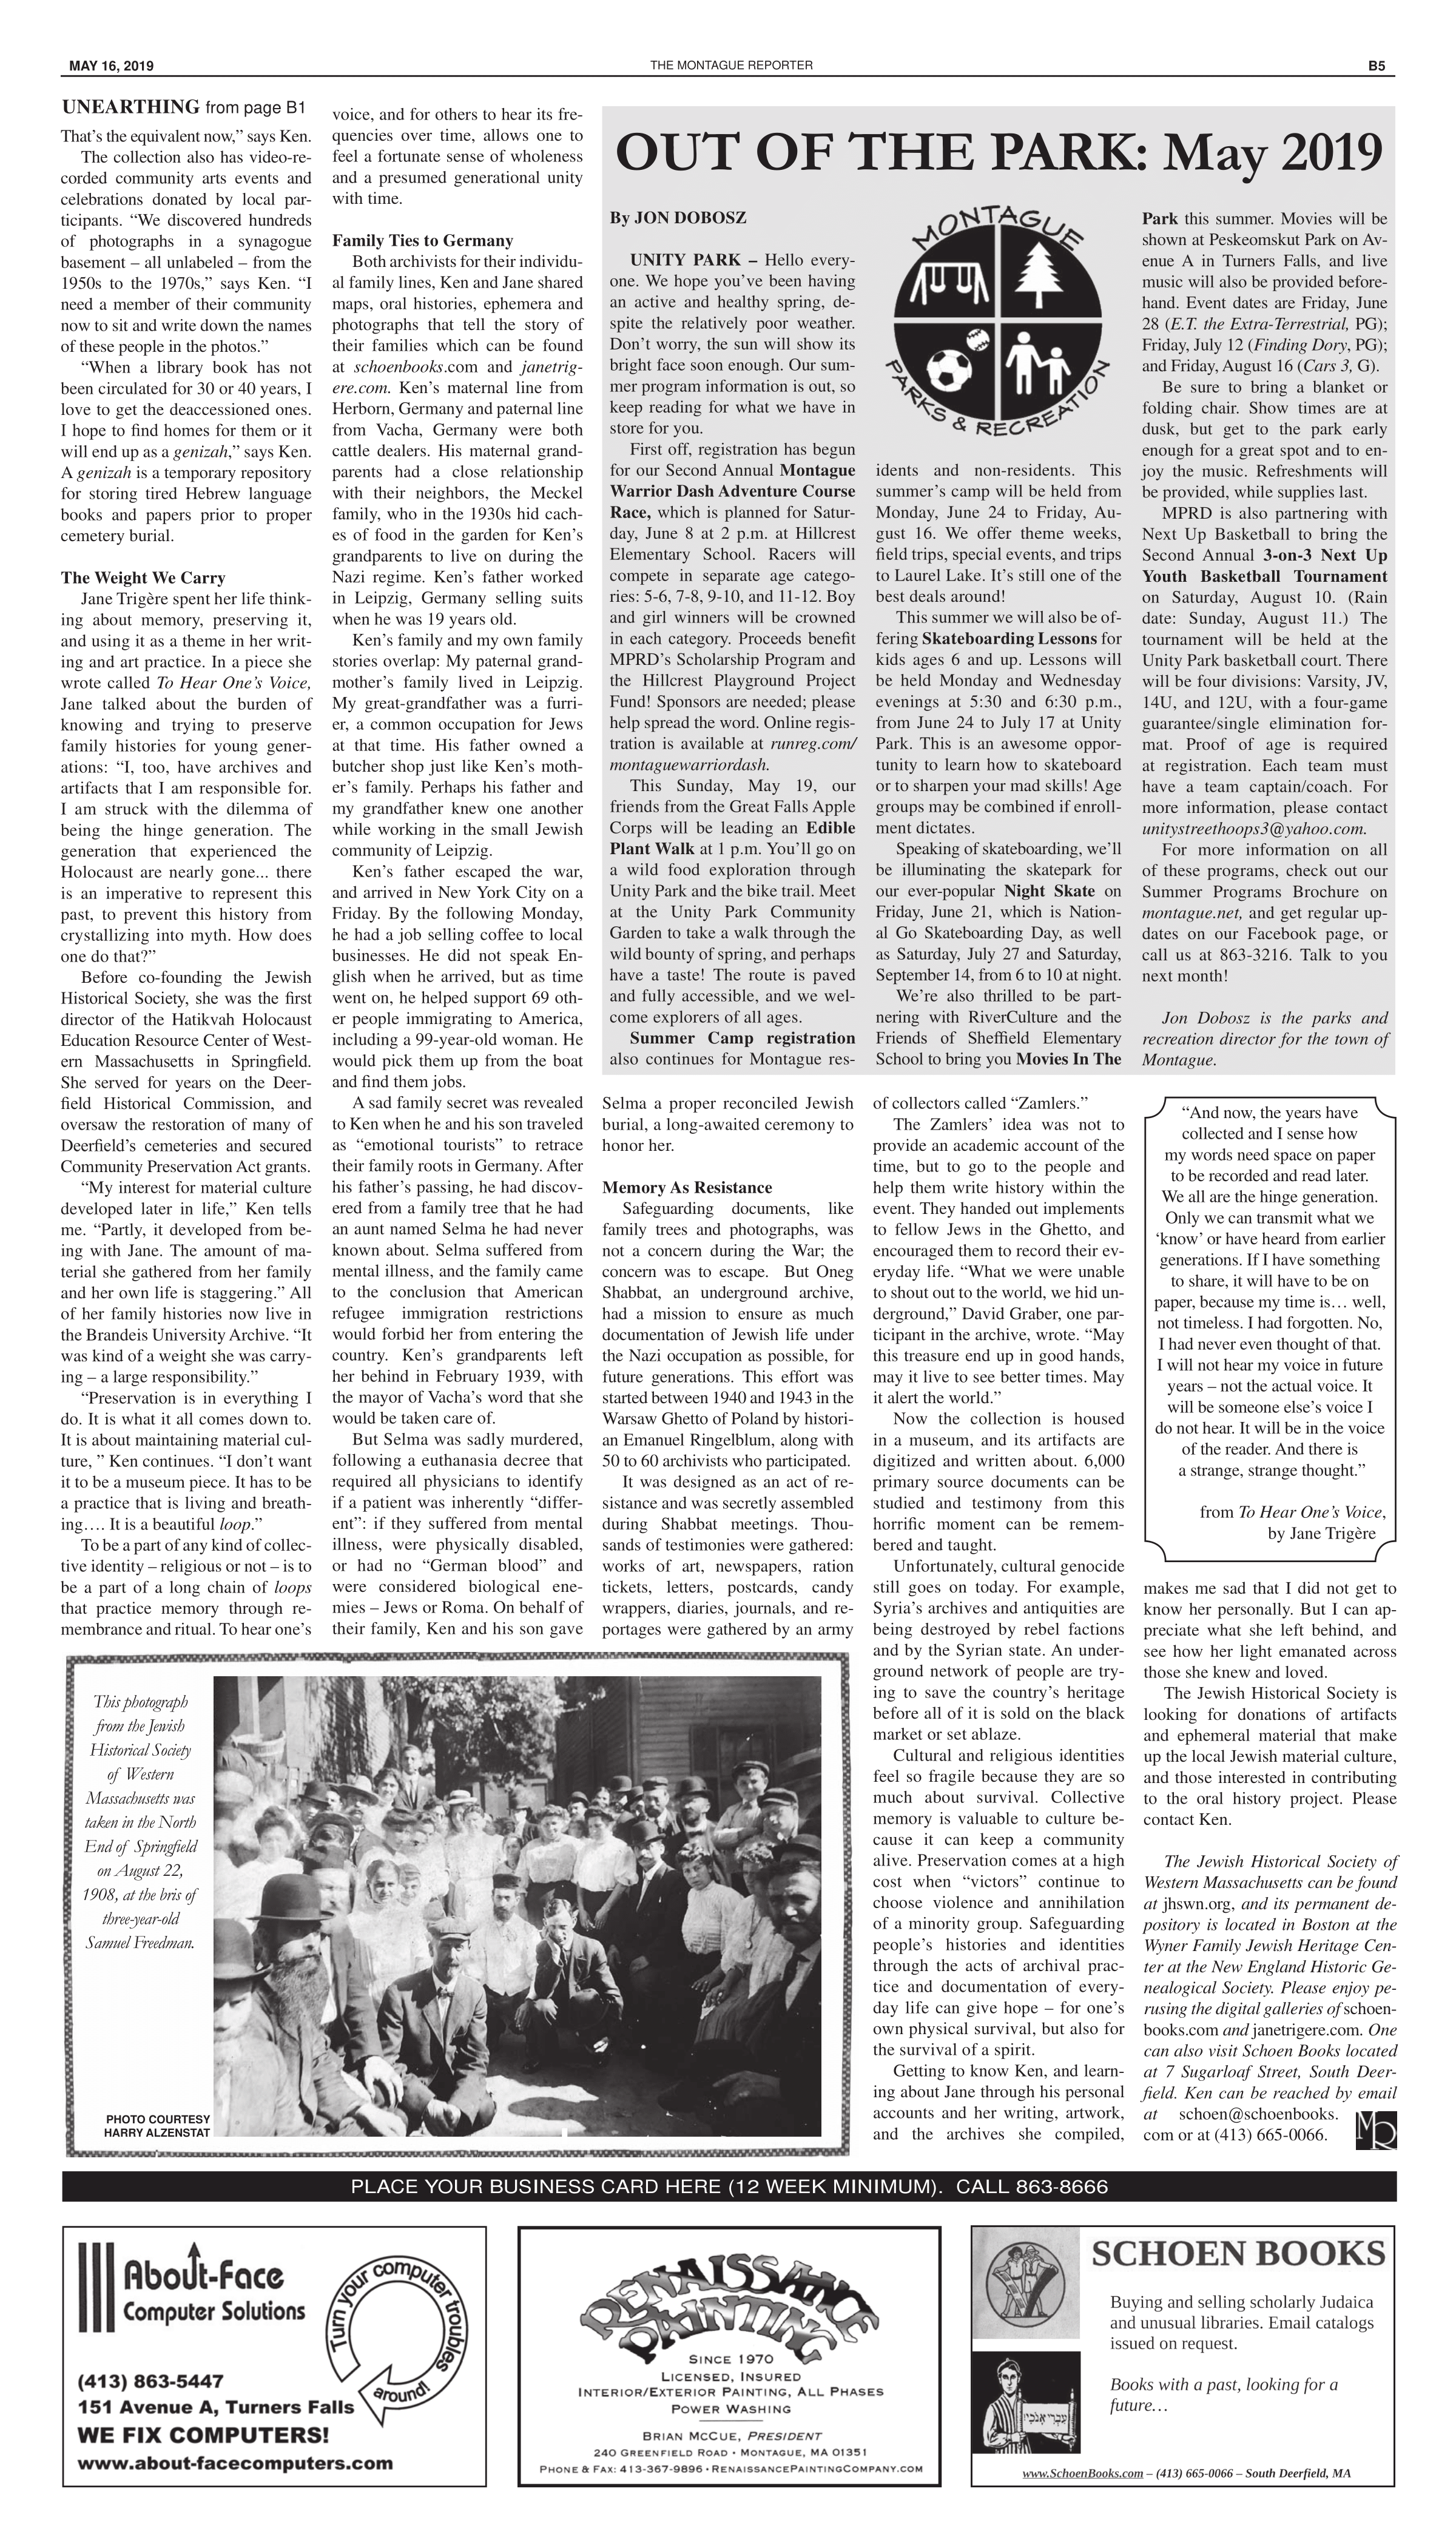 Montague Reporter, May 16 2019 - page 5